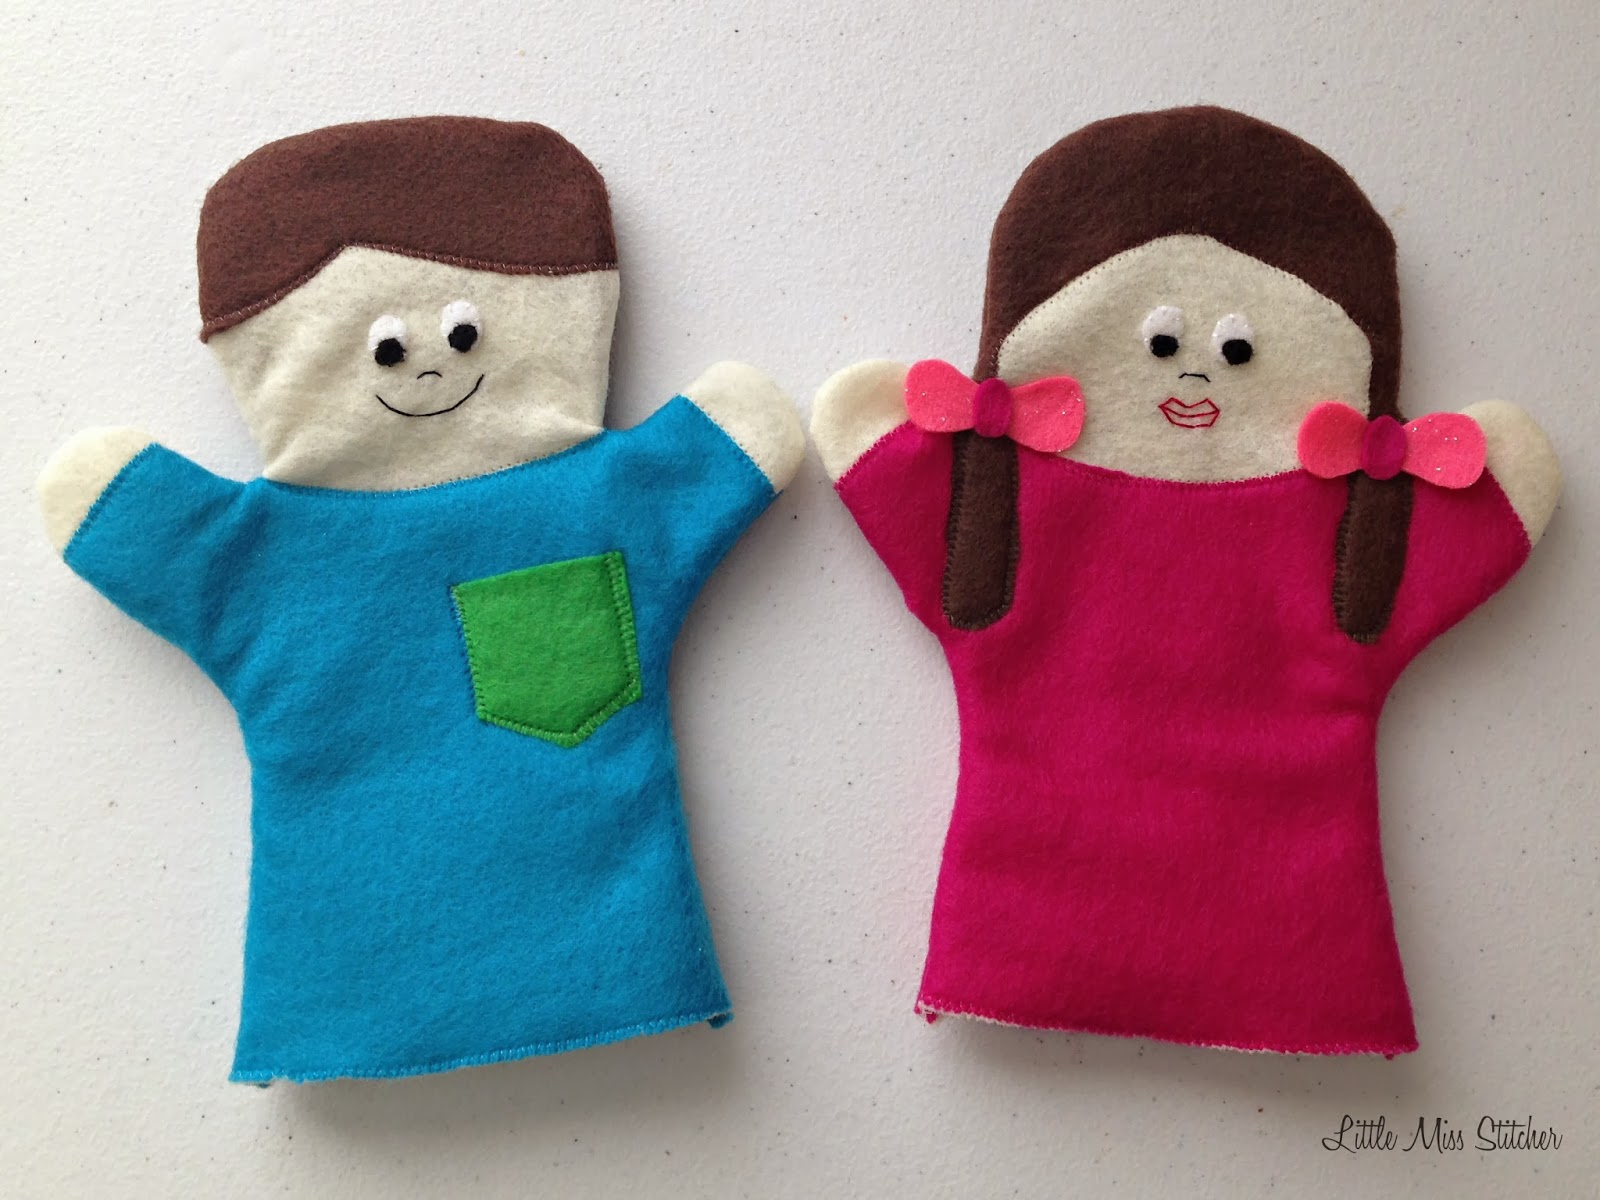 How to Make Felt Puppets